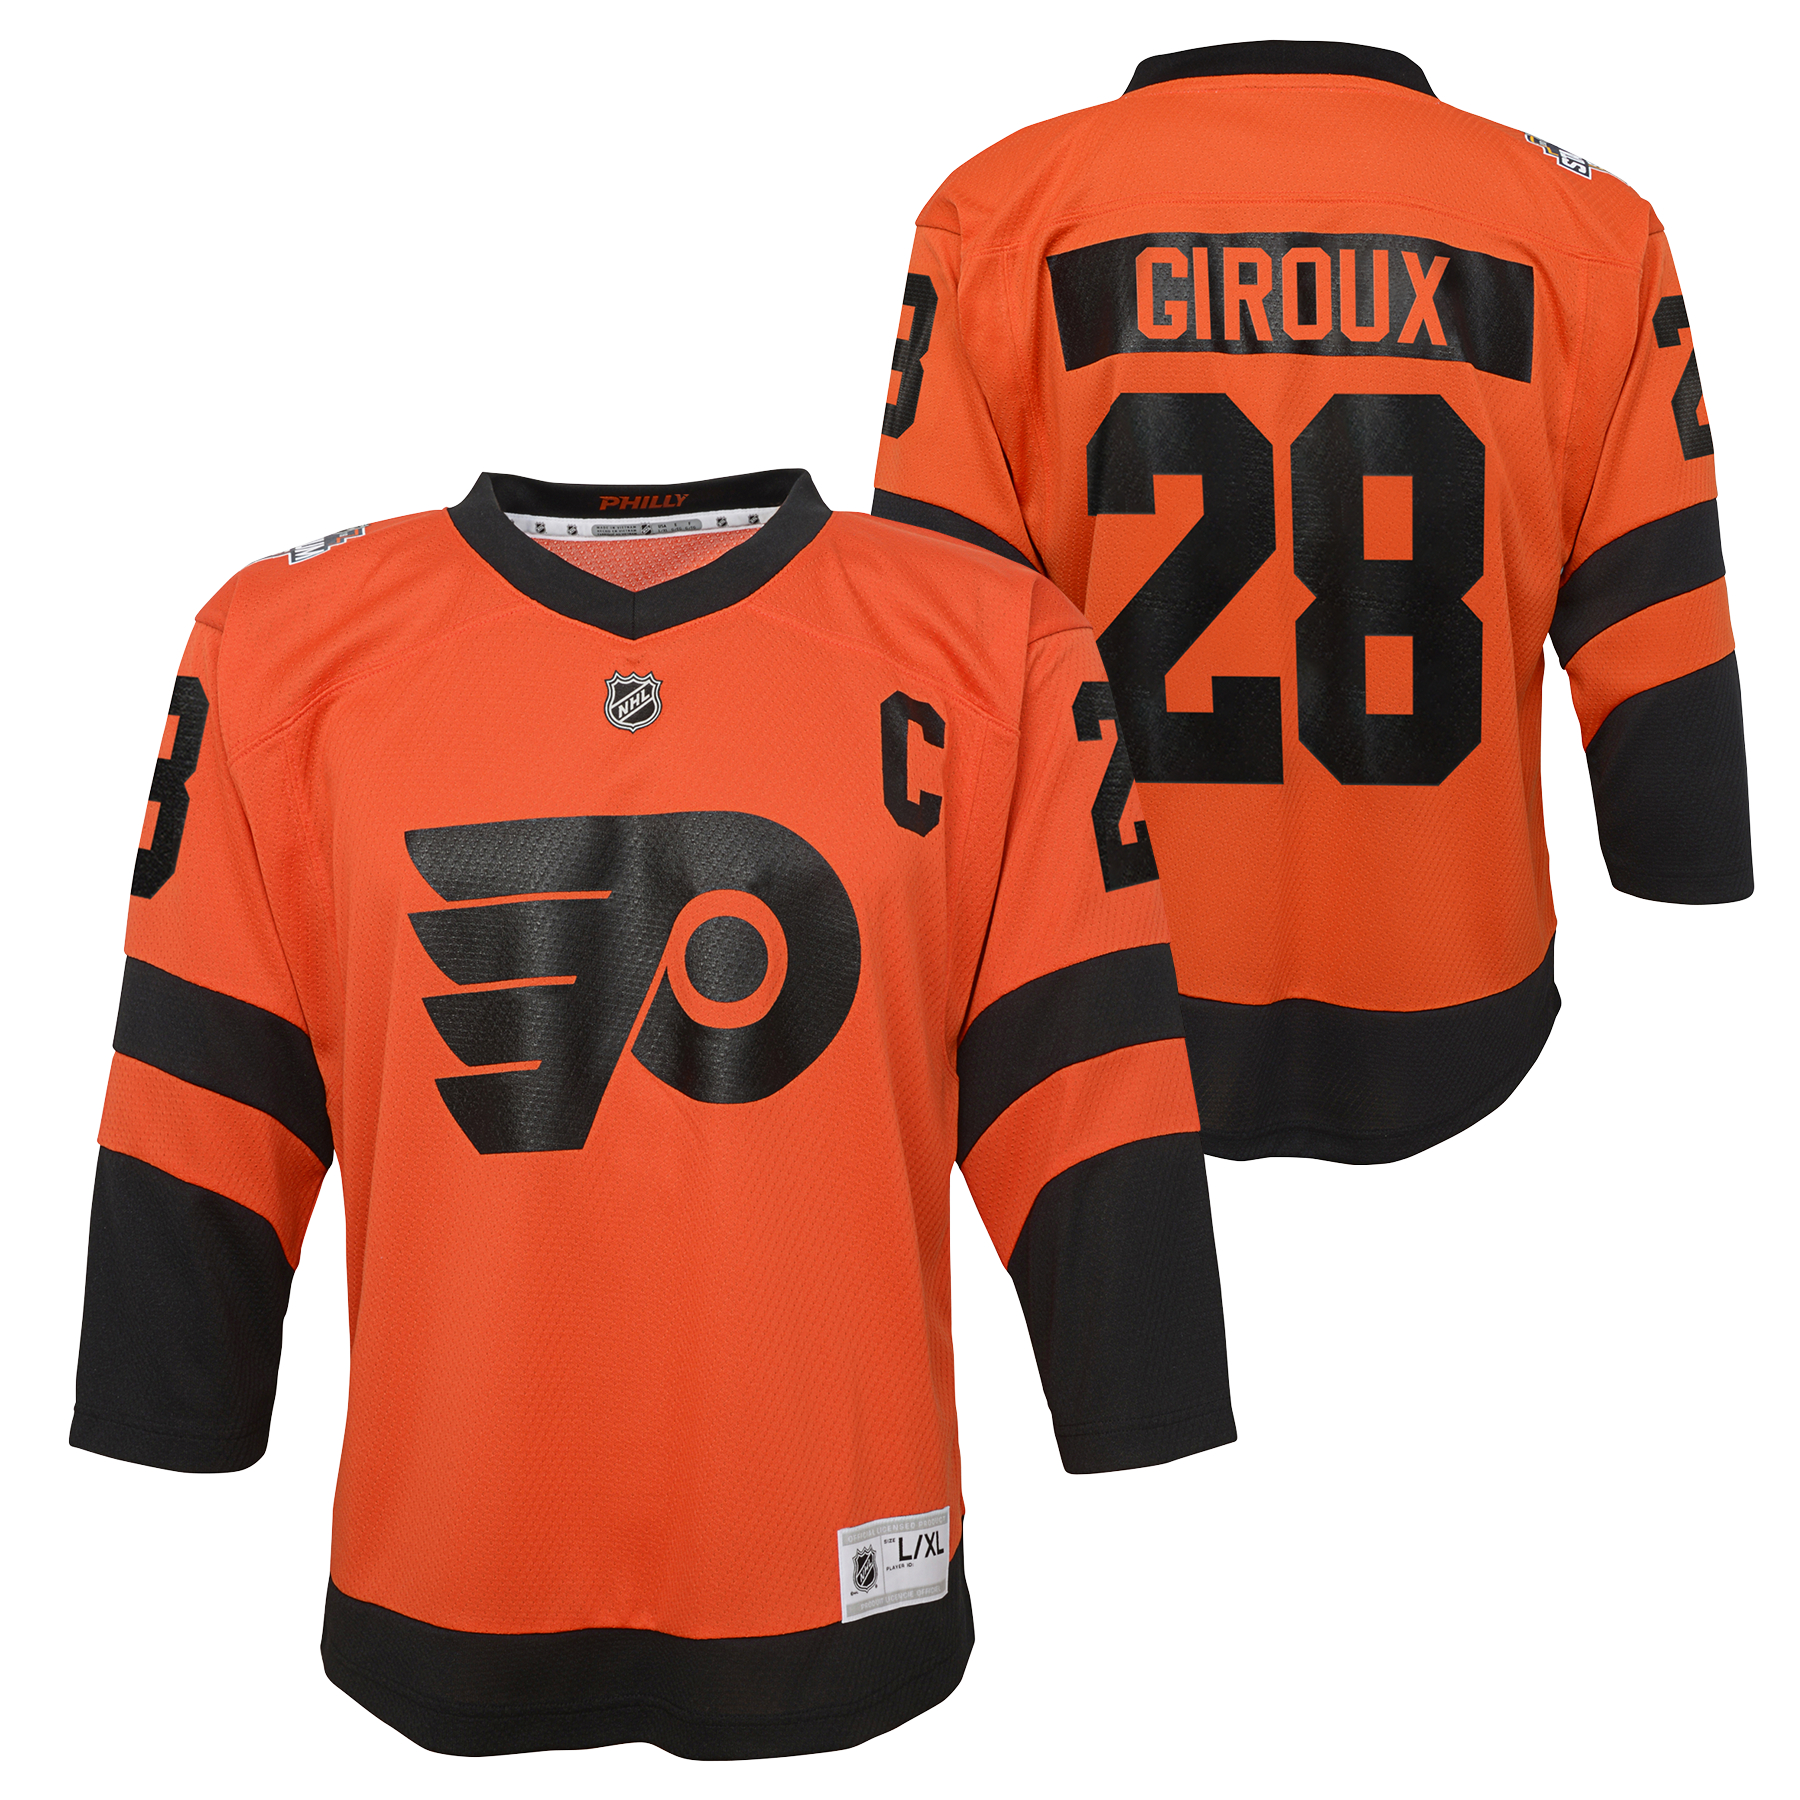 Philadelphia Flyers Youth 2019 Stadium Series Giroux Jersey by Outerstuff 8da653277